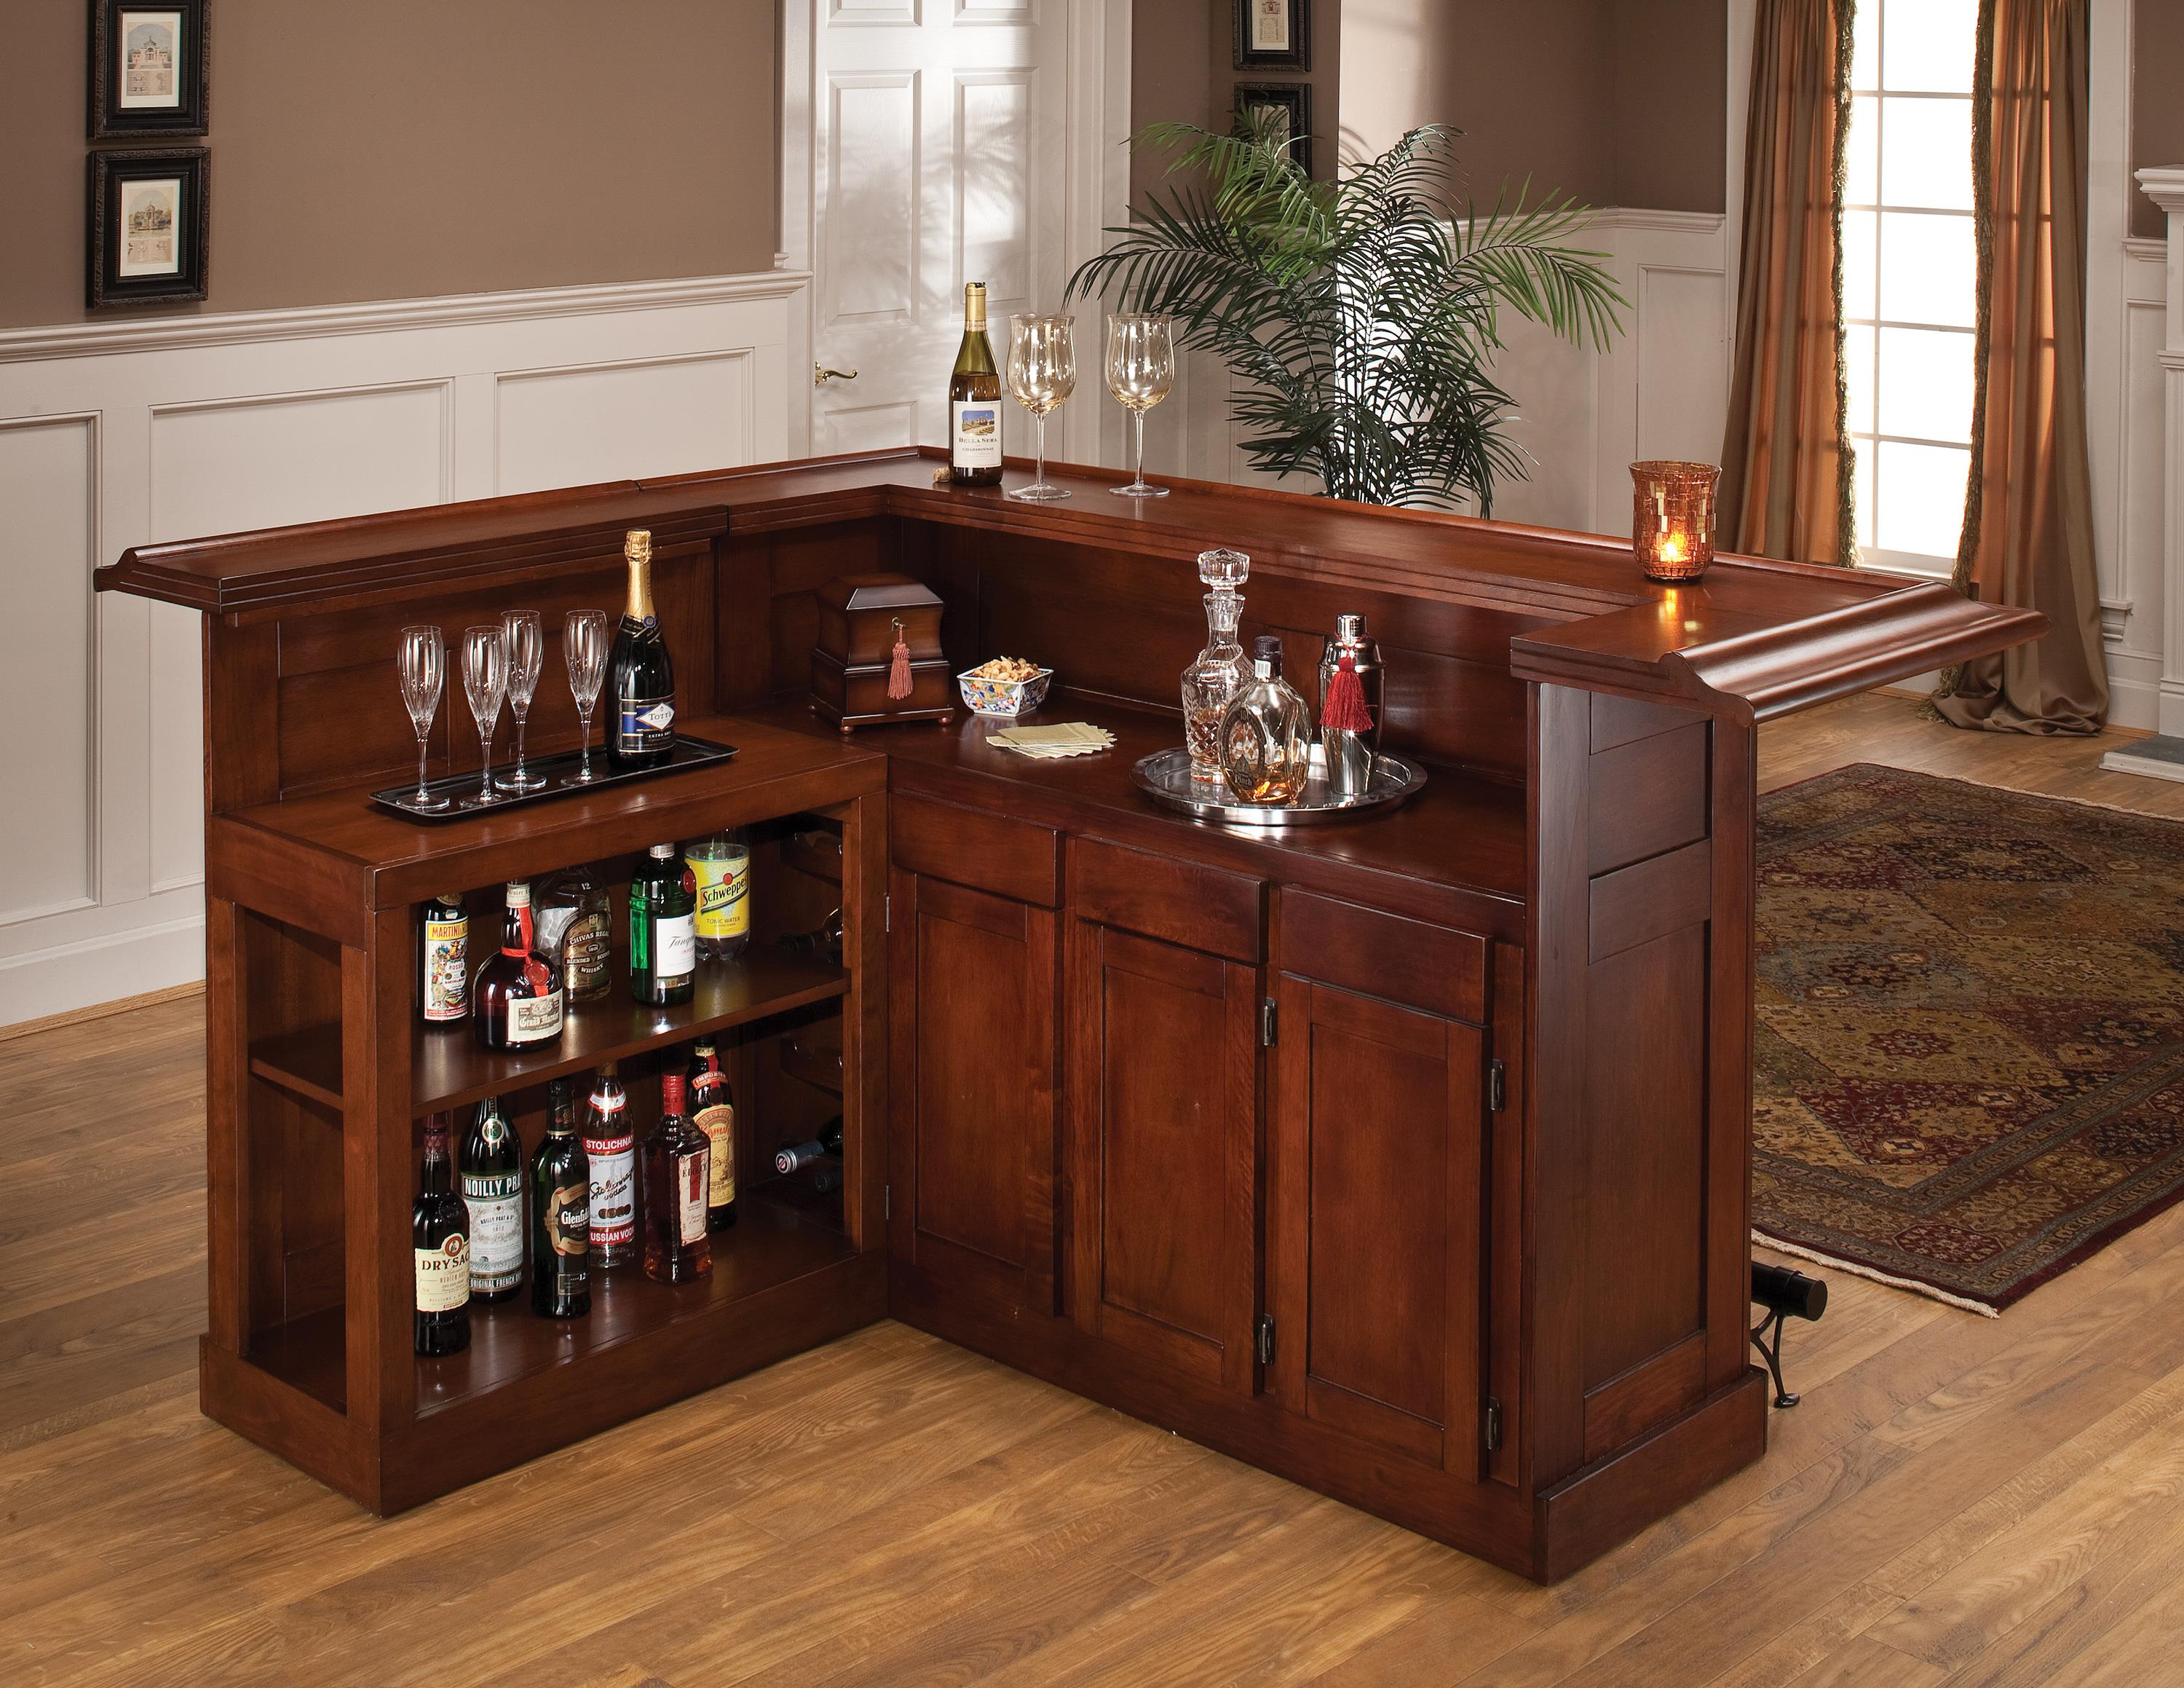 Hillsdale Classic Oak 625 Large Cherry Bar with Side Bar - Item Number: 62578AXCHE